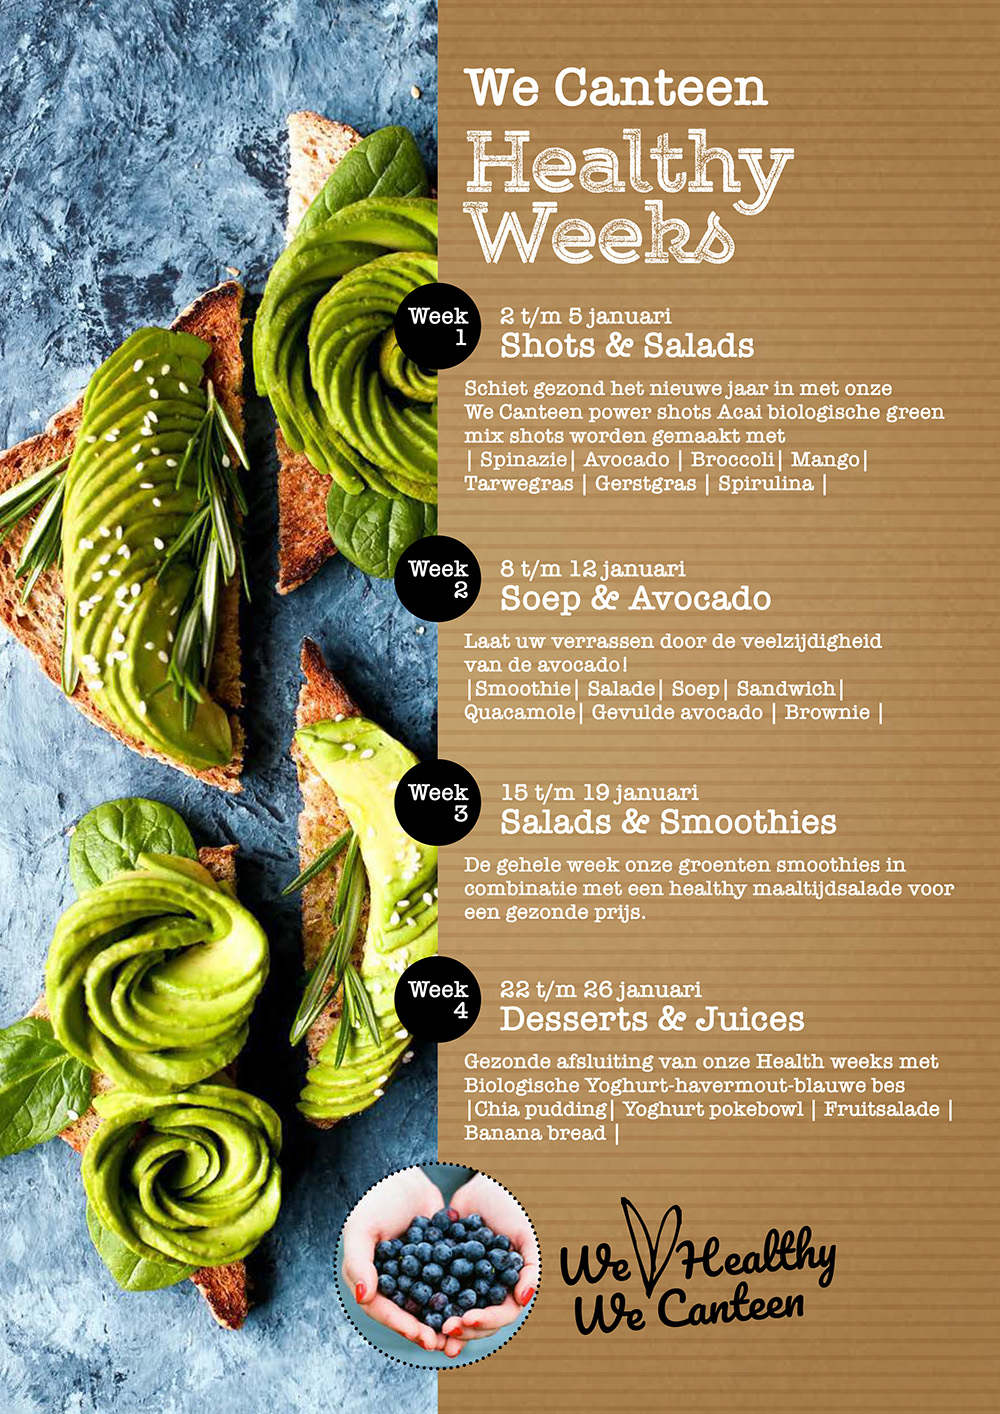 We Canteen - Healthy Weeks